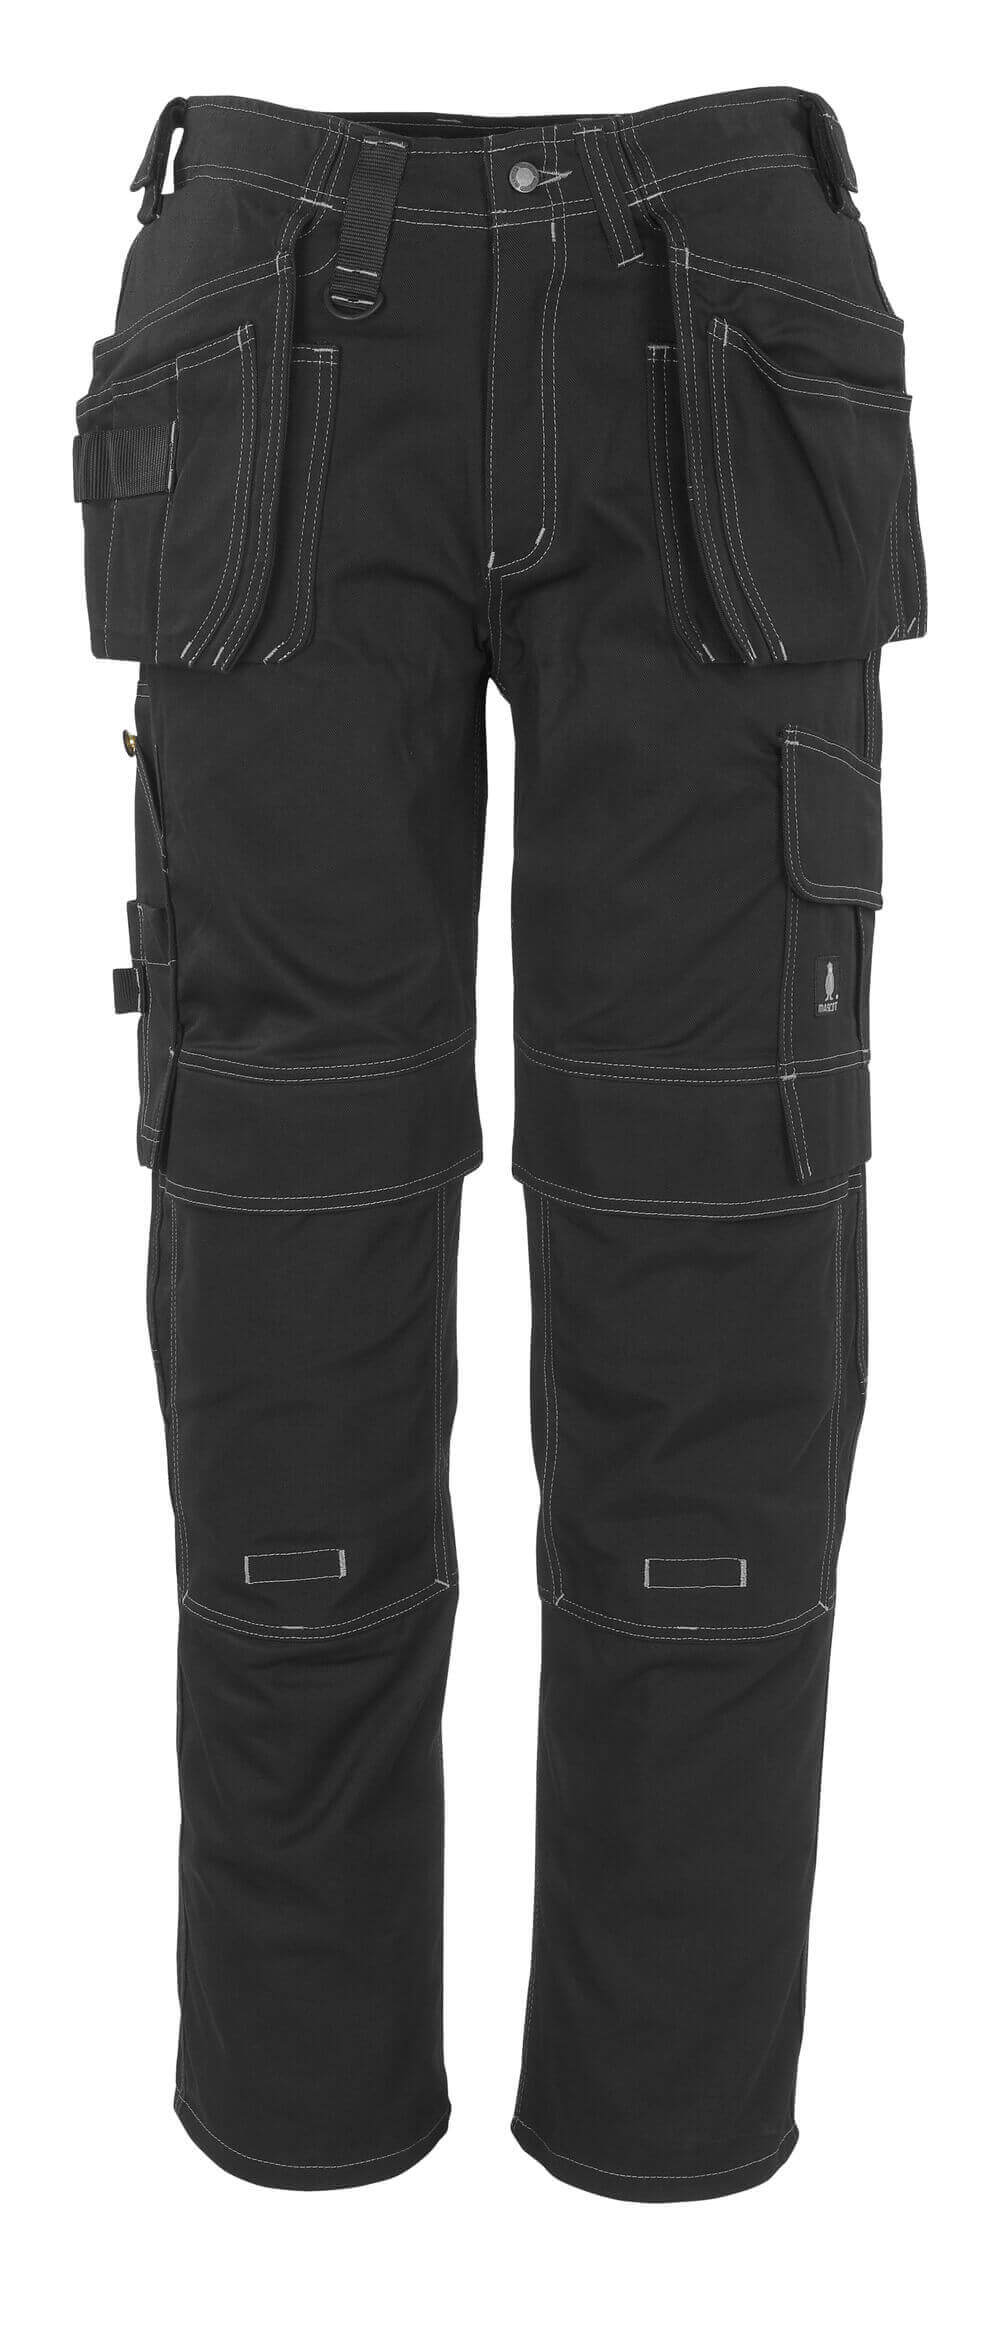 06131-630-09 Pants with kneepad pockets and holster pockets - black